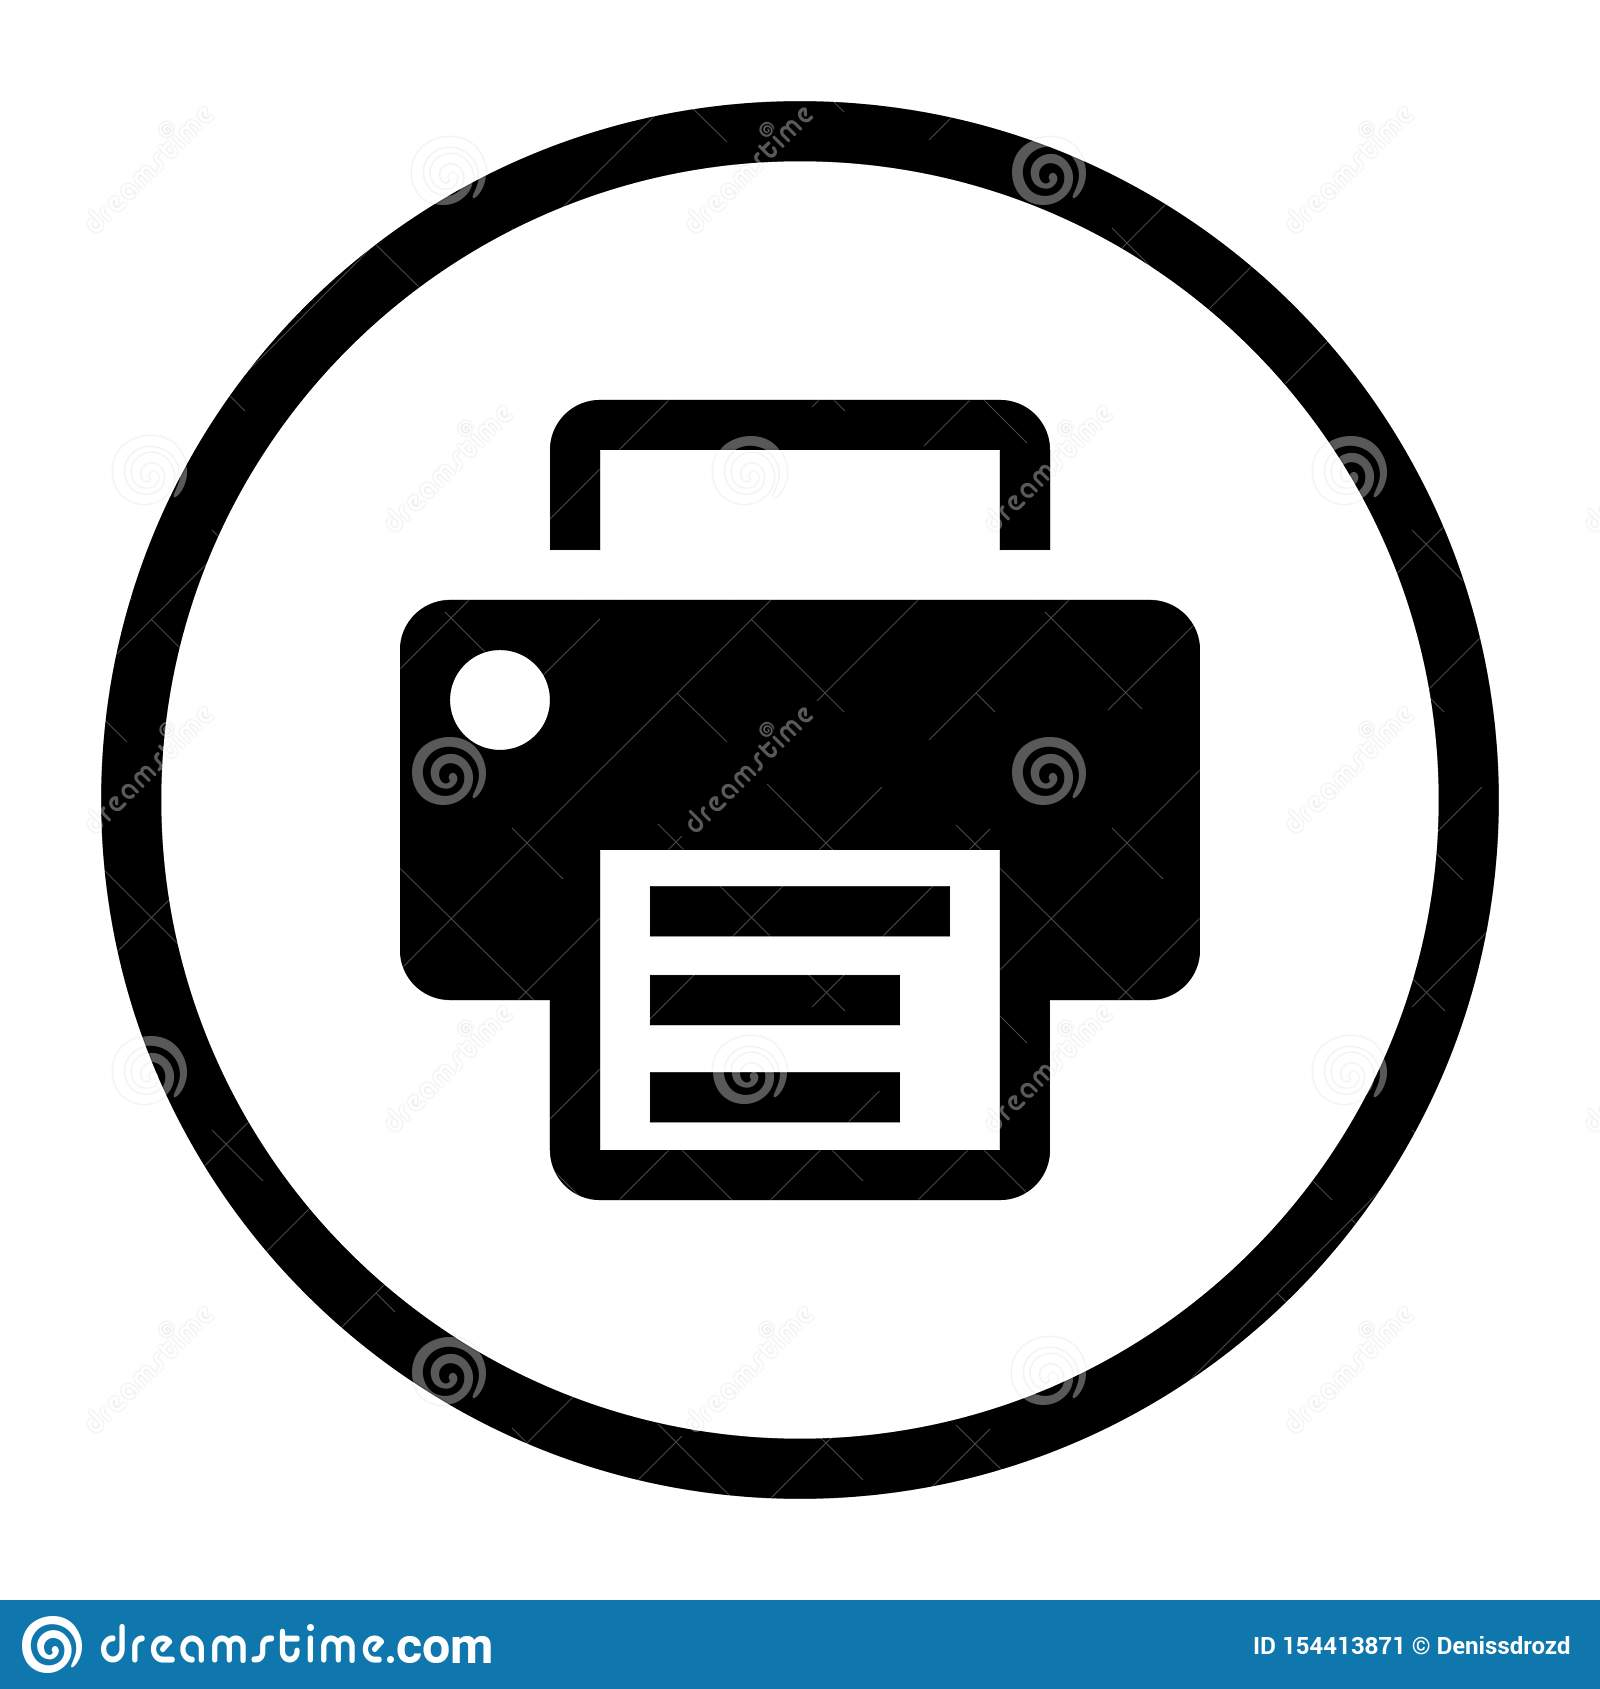 printer icon vector office equipment illustration symbol fax logo stock illustration illustration of modern electrical 154413871 https www dreamstime com printer icon vector office equipment illustration symbol fax logo web mobile image154413871